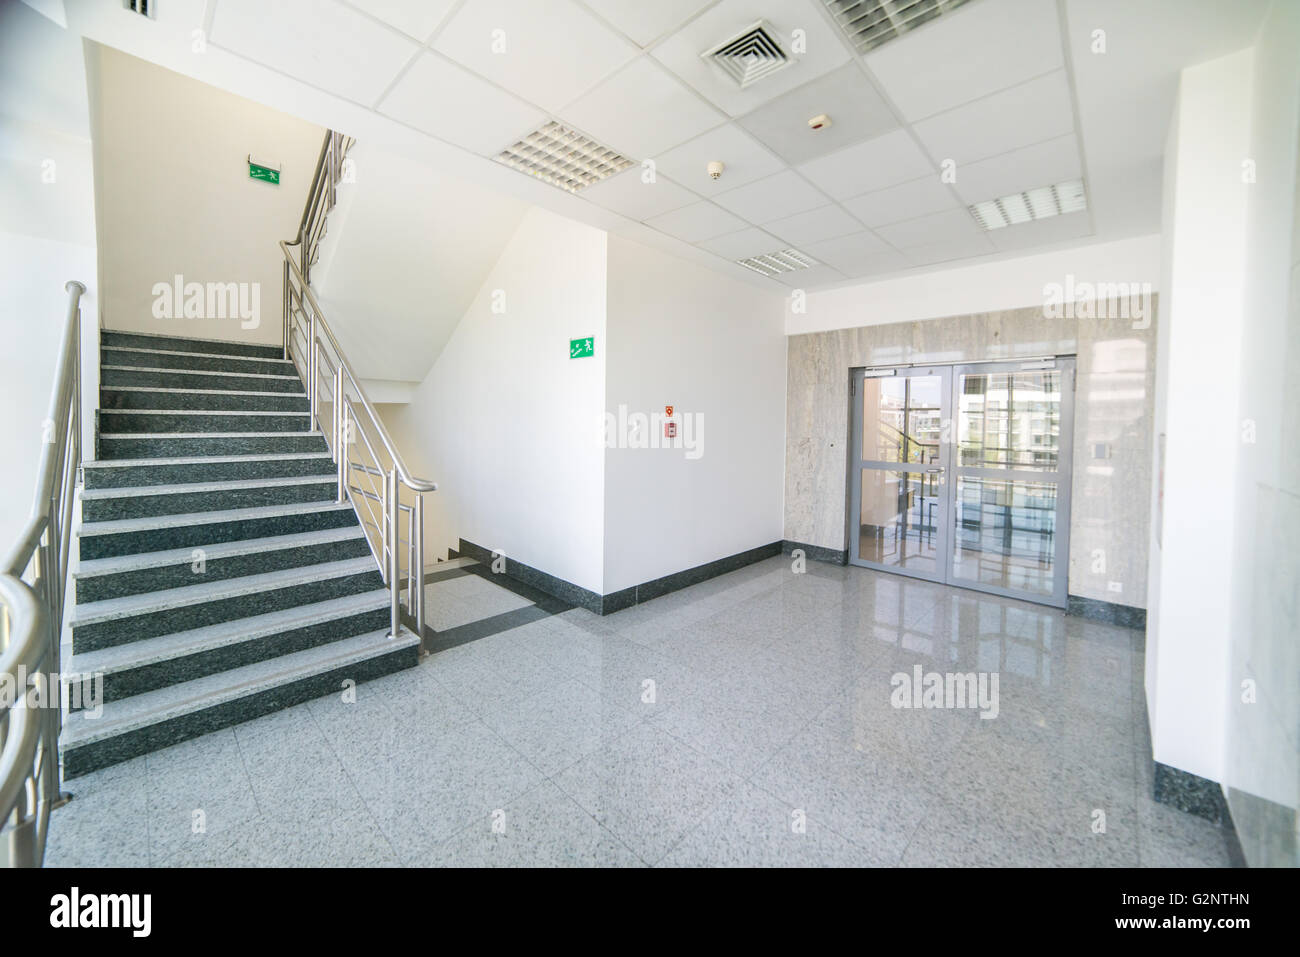 staircase in office building. Stairs and doors & staircase in office building. Stairs and doors Stock Photo ...